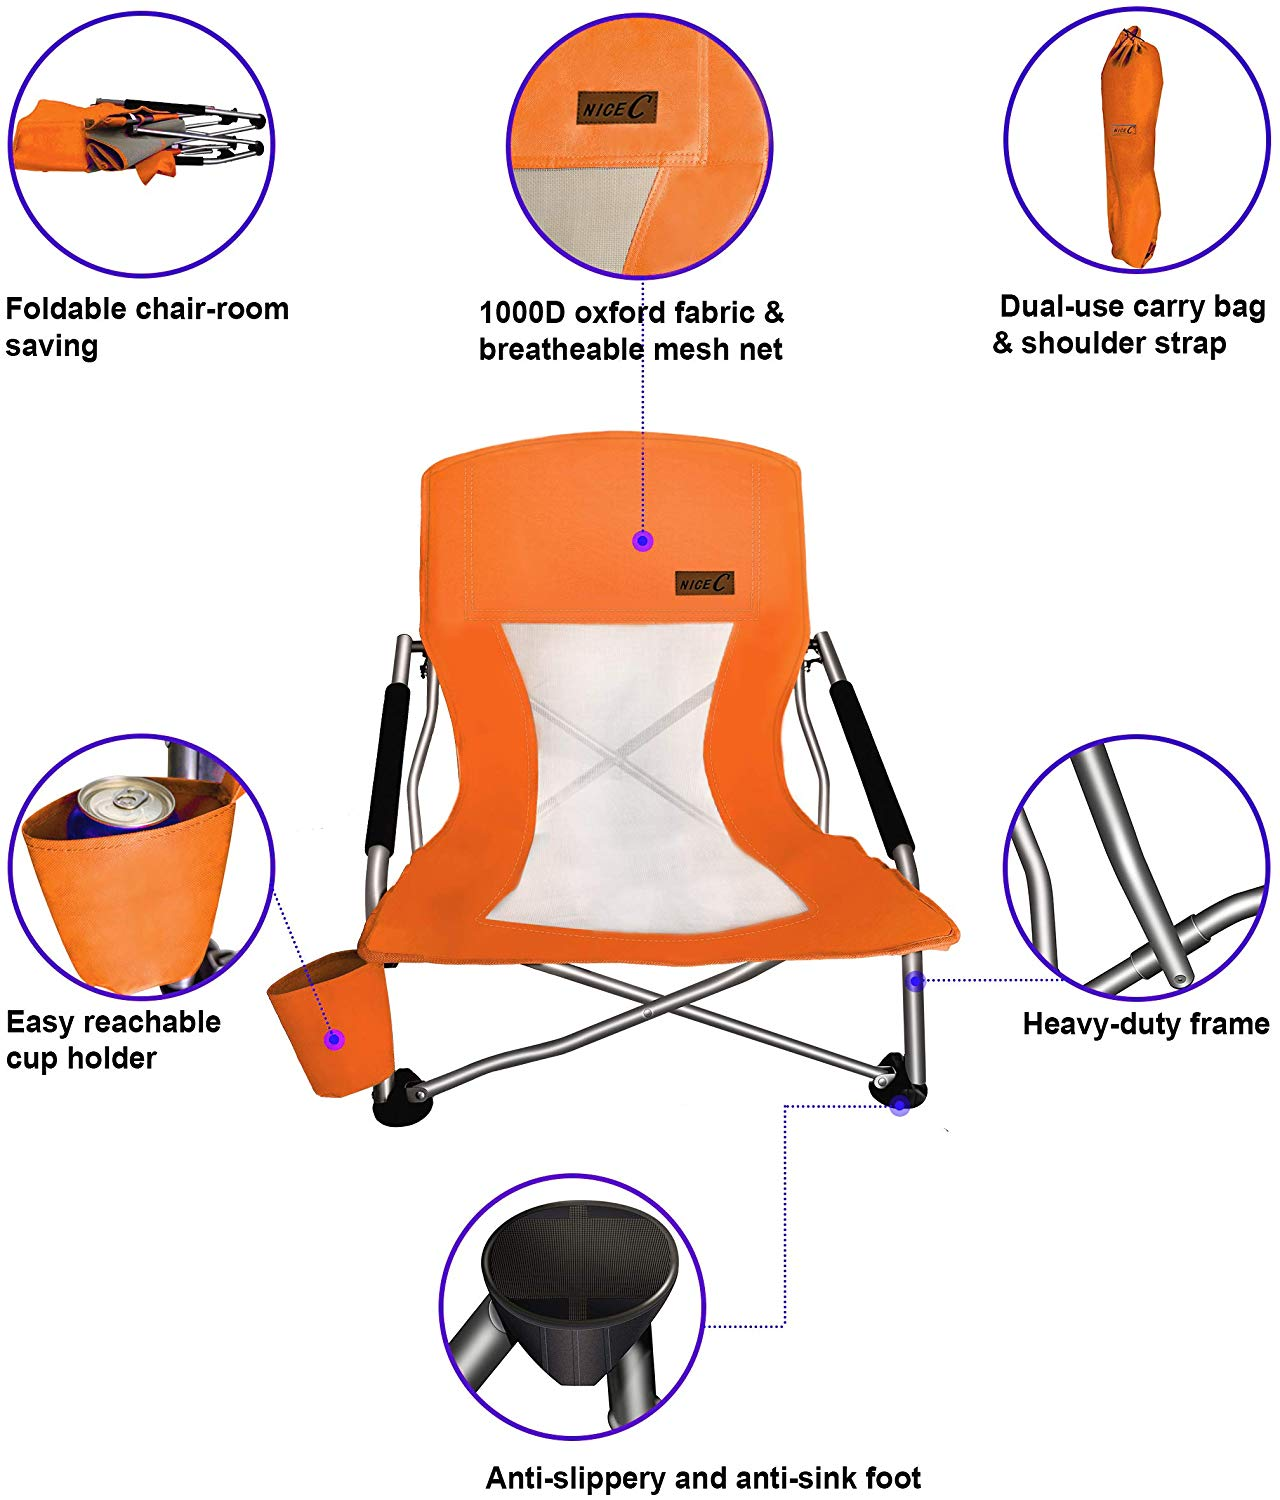 Nice C Low Beach Camping Folding Chair Ultralight Backpacking Chair With Cup Holder Carry Bag Compact Heavy Duty Outdoor Indoor 2 Pack Of Blue Walmart Com Walmart Com